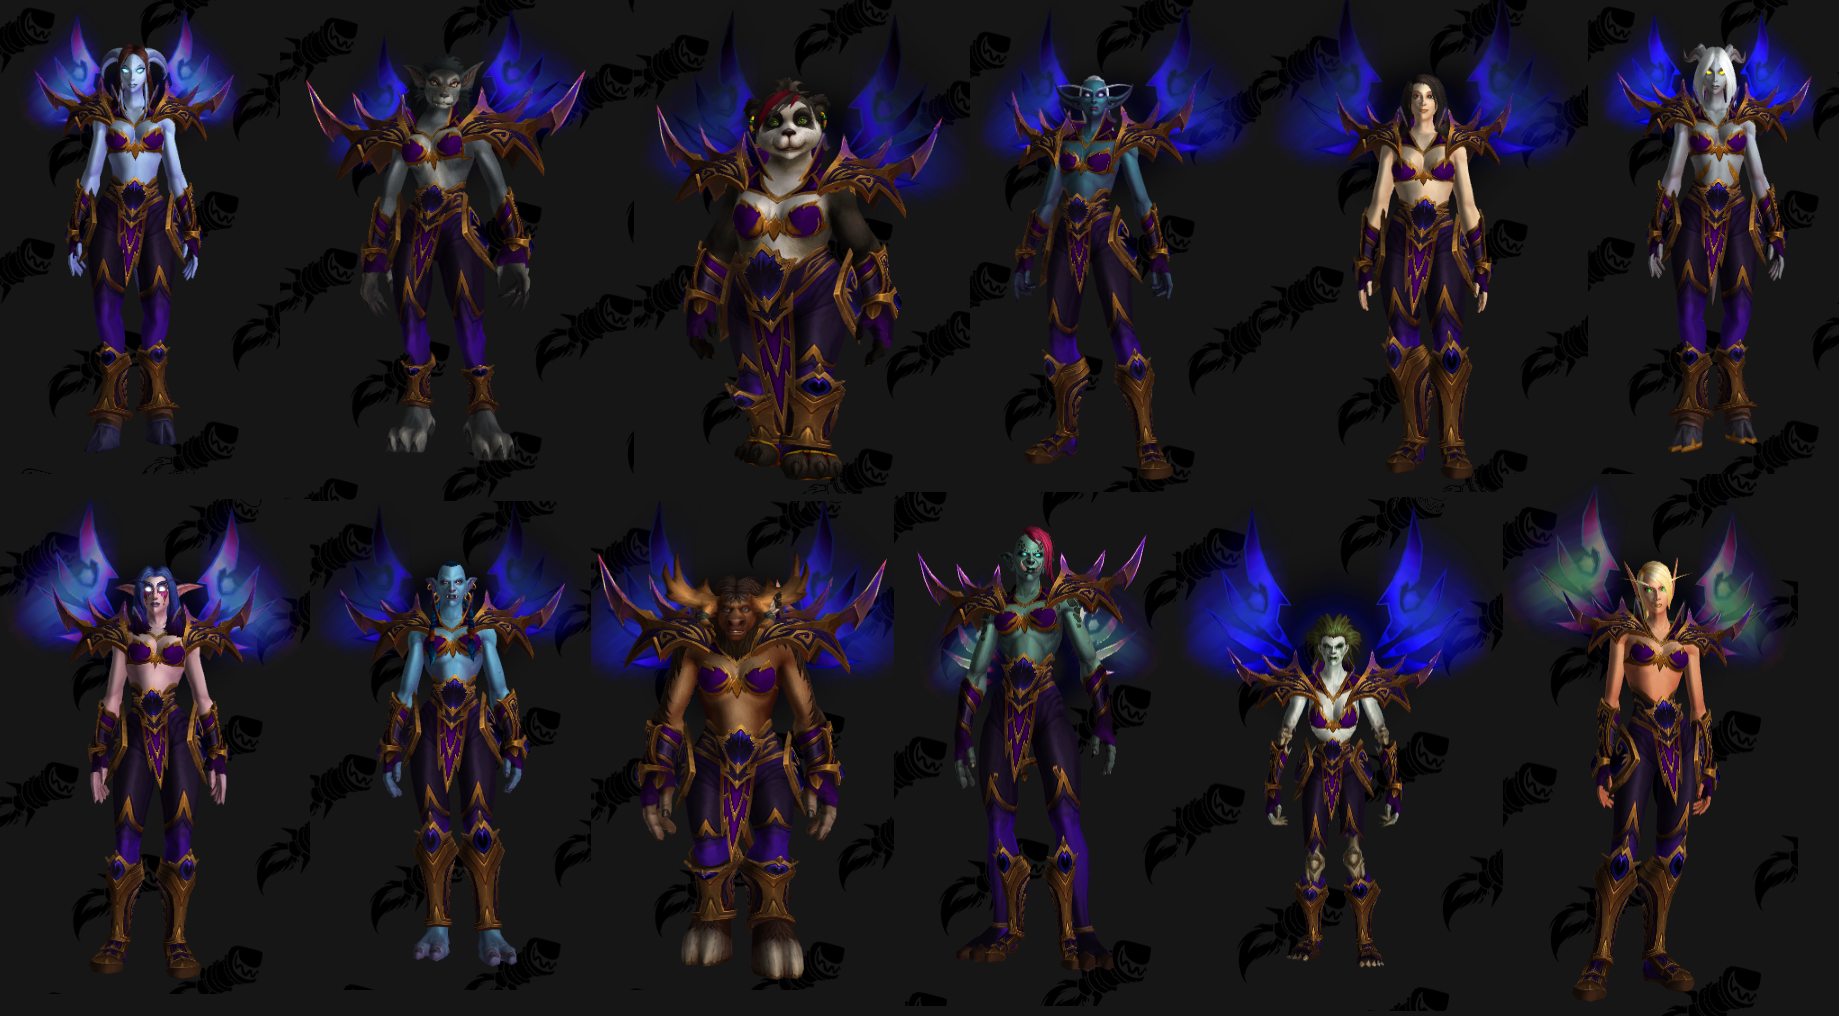 Void Elf Heritage Armor On Females Of Other Races Gnomes And Goblins Not Included Worldofwarcraft Blizzard Hearthstone Wow Elf World Of Warcraft Goblin Balance druids are the third most popular dps spec. void elf heritage armor on females of